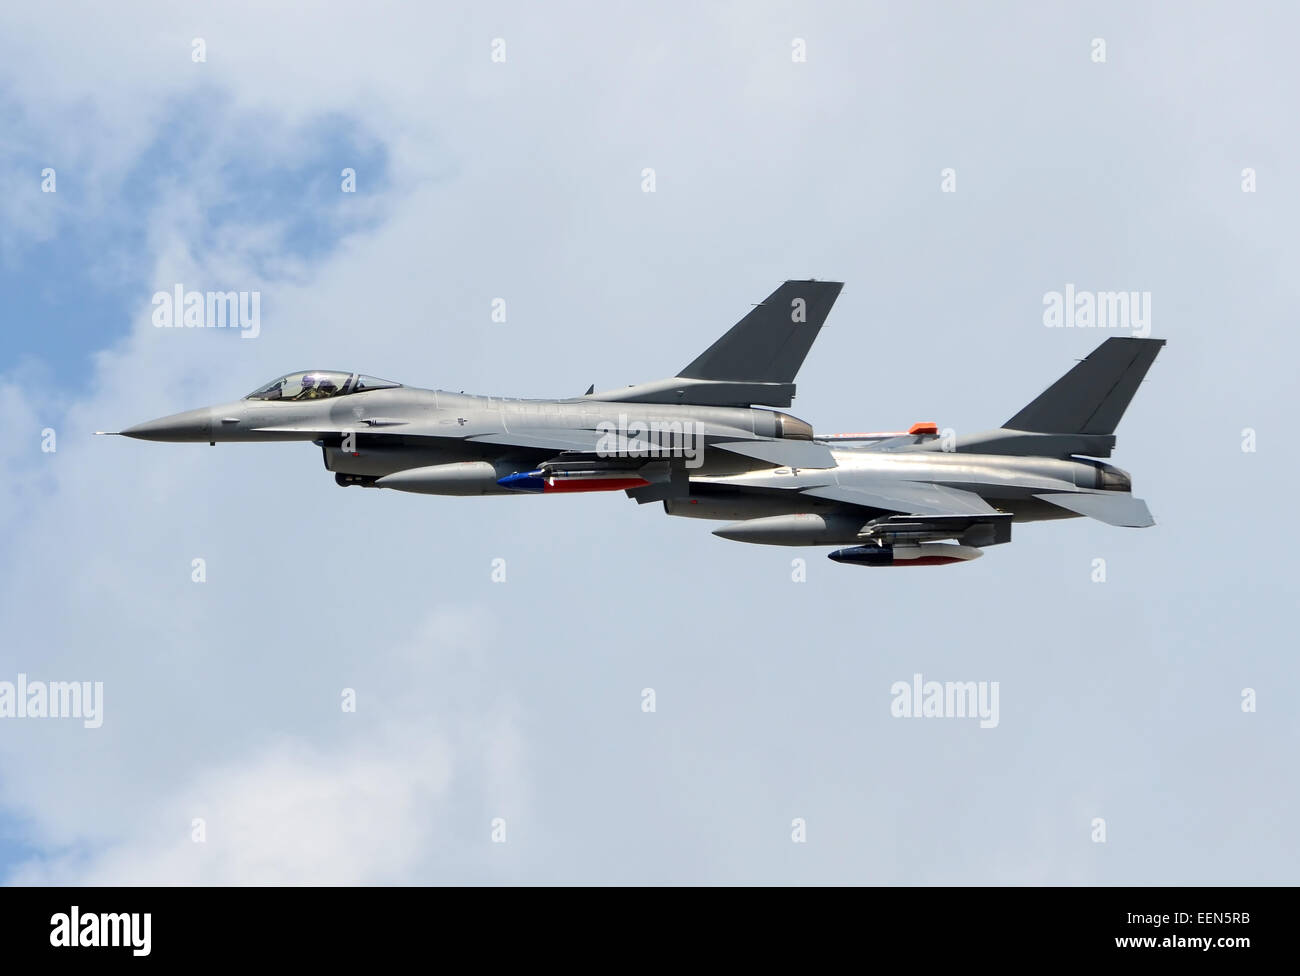 Two modern F-16 fighter jets at high altitude - Stock Image